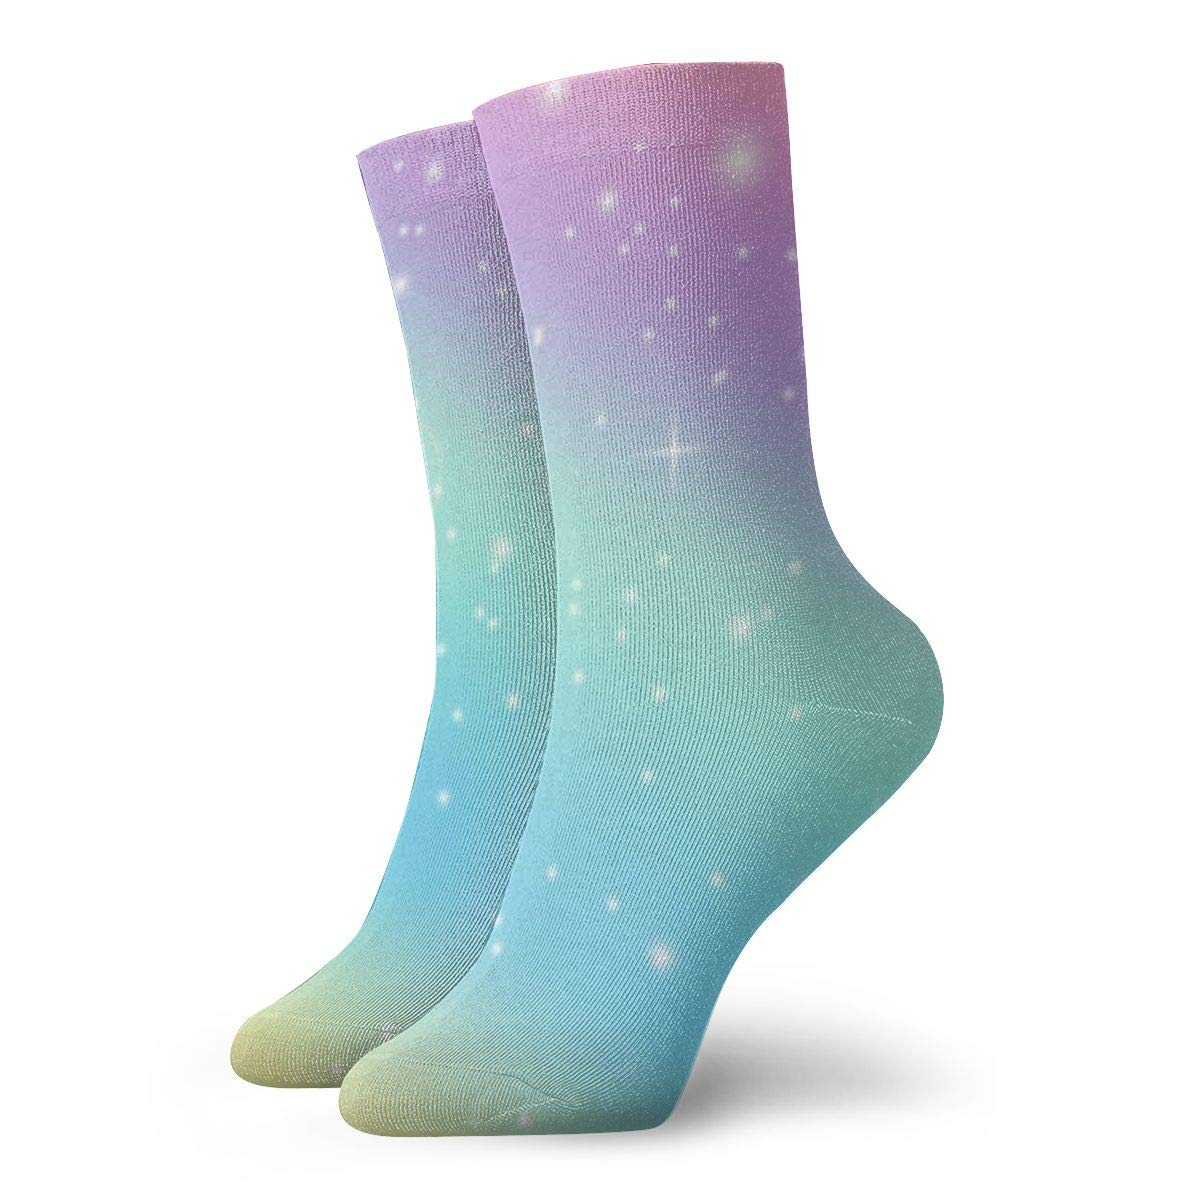 Rainbow Pastel Unisex Funny Casual Crew Socks Athletic Socks For Boys Girls Kids Teenagers